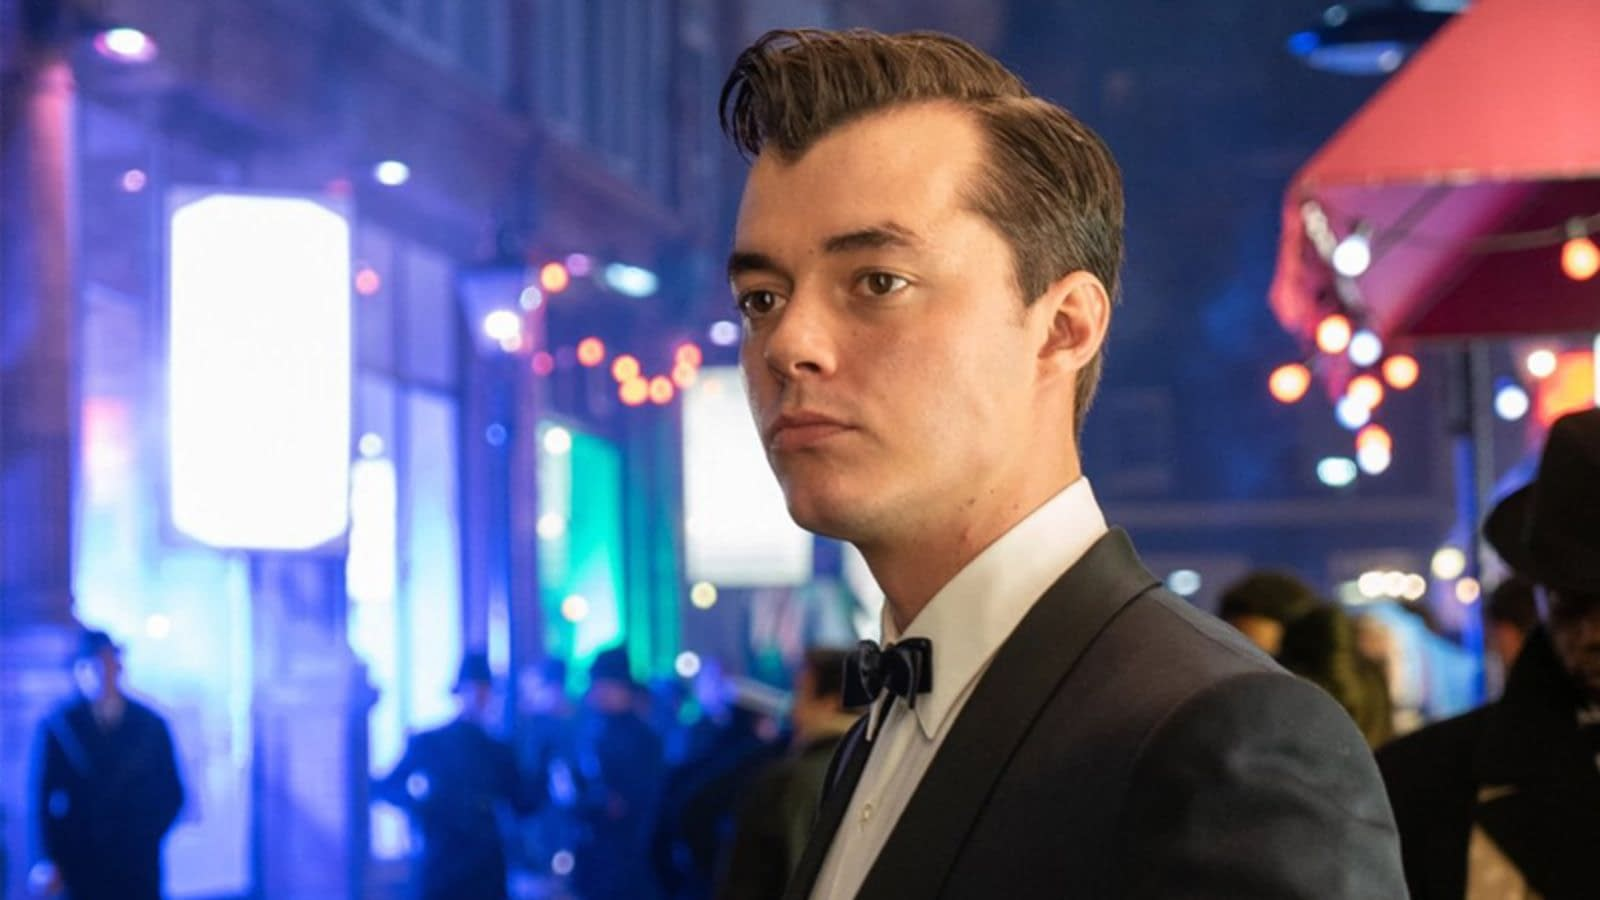 """""""Pennyworth"""": Batman Prequel Series & '60s London Fever Dream – Wrapped Up in One! [OPINION]"""